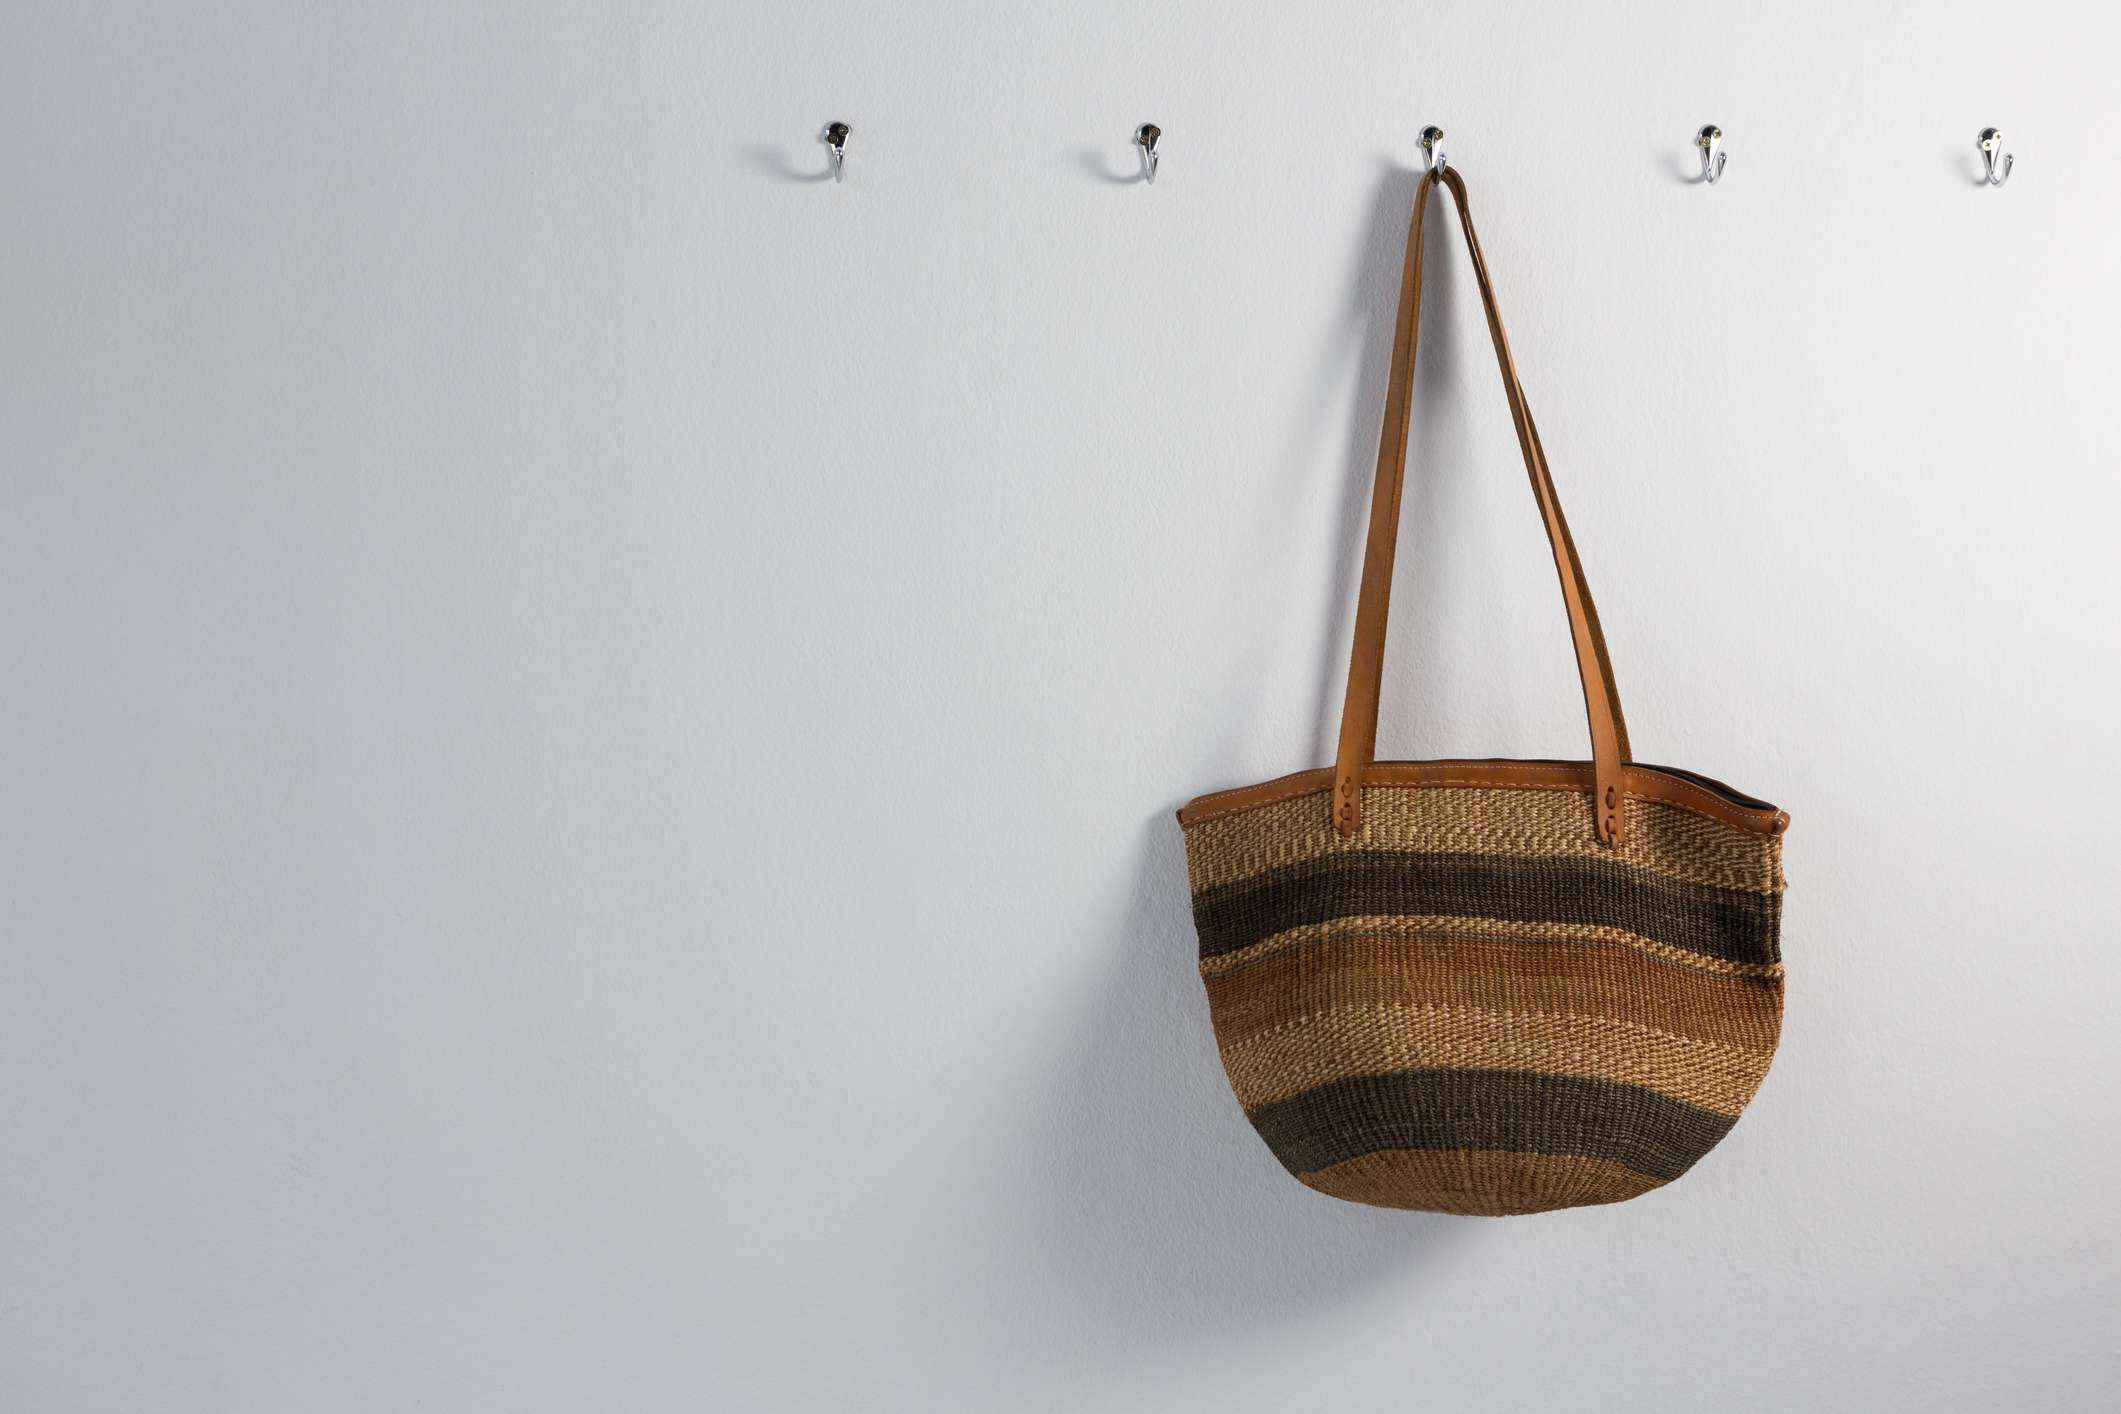 A purse hanging on hooks